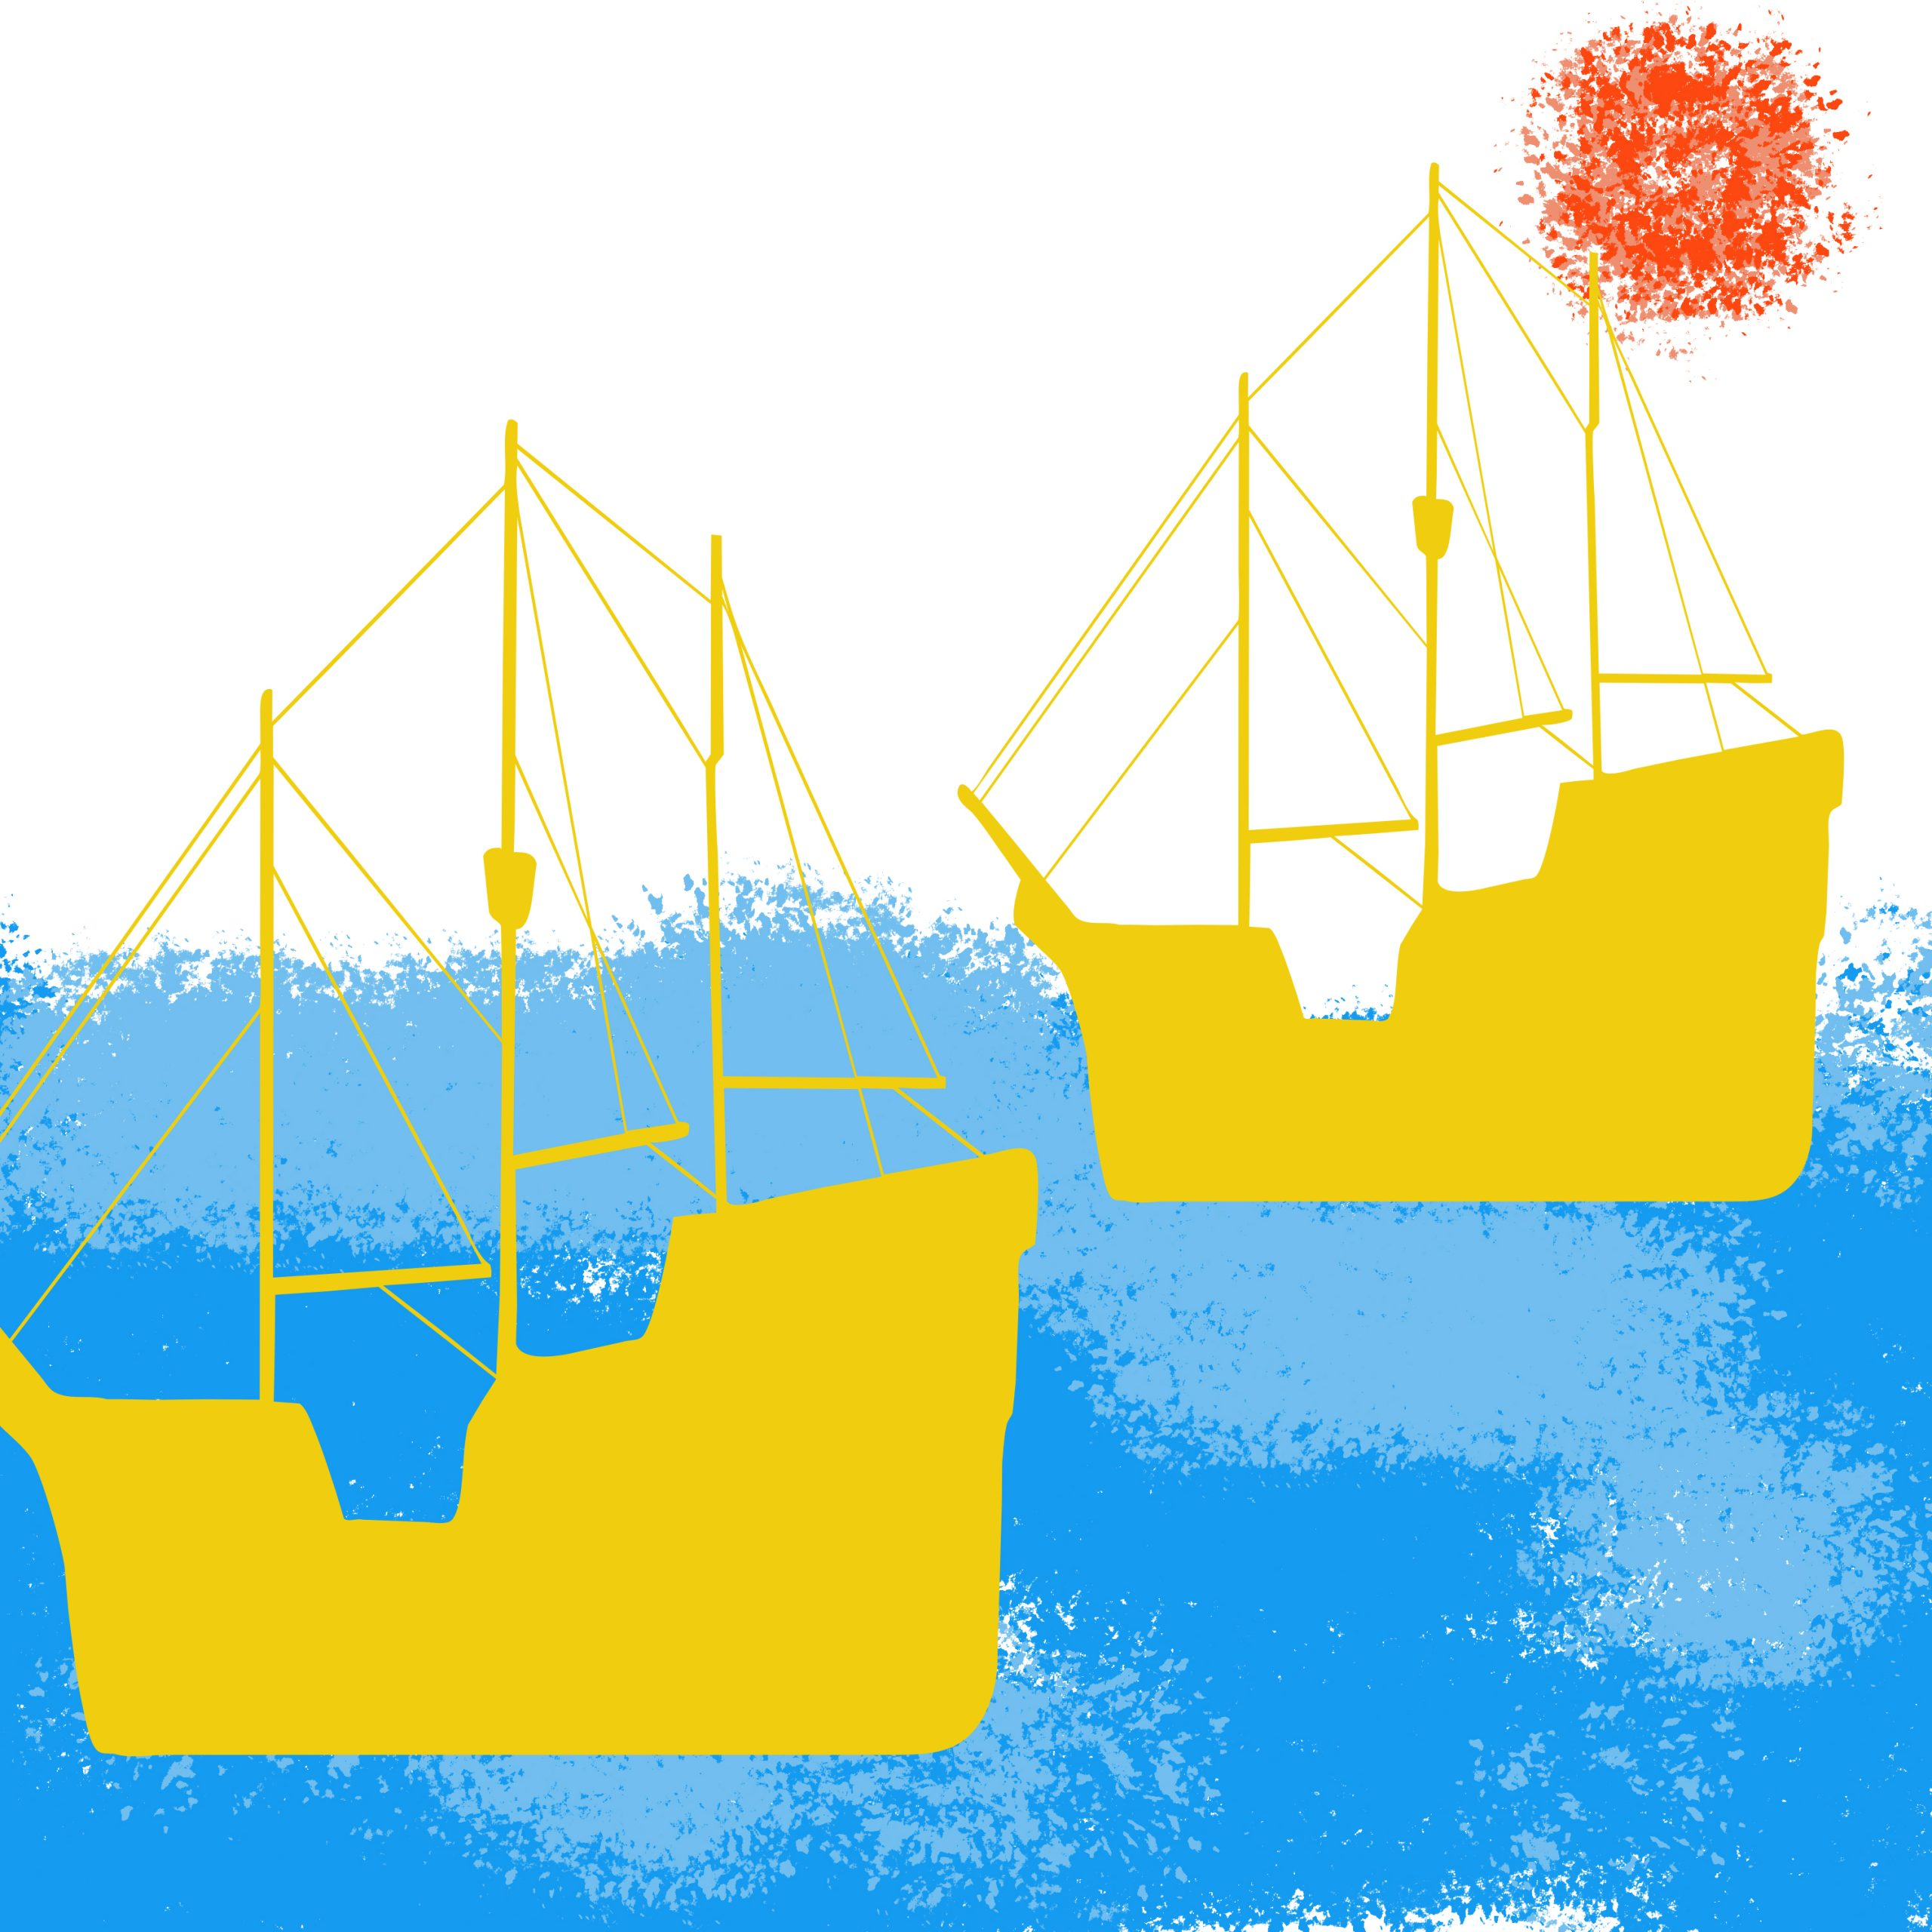 Ships and water illustration